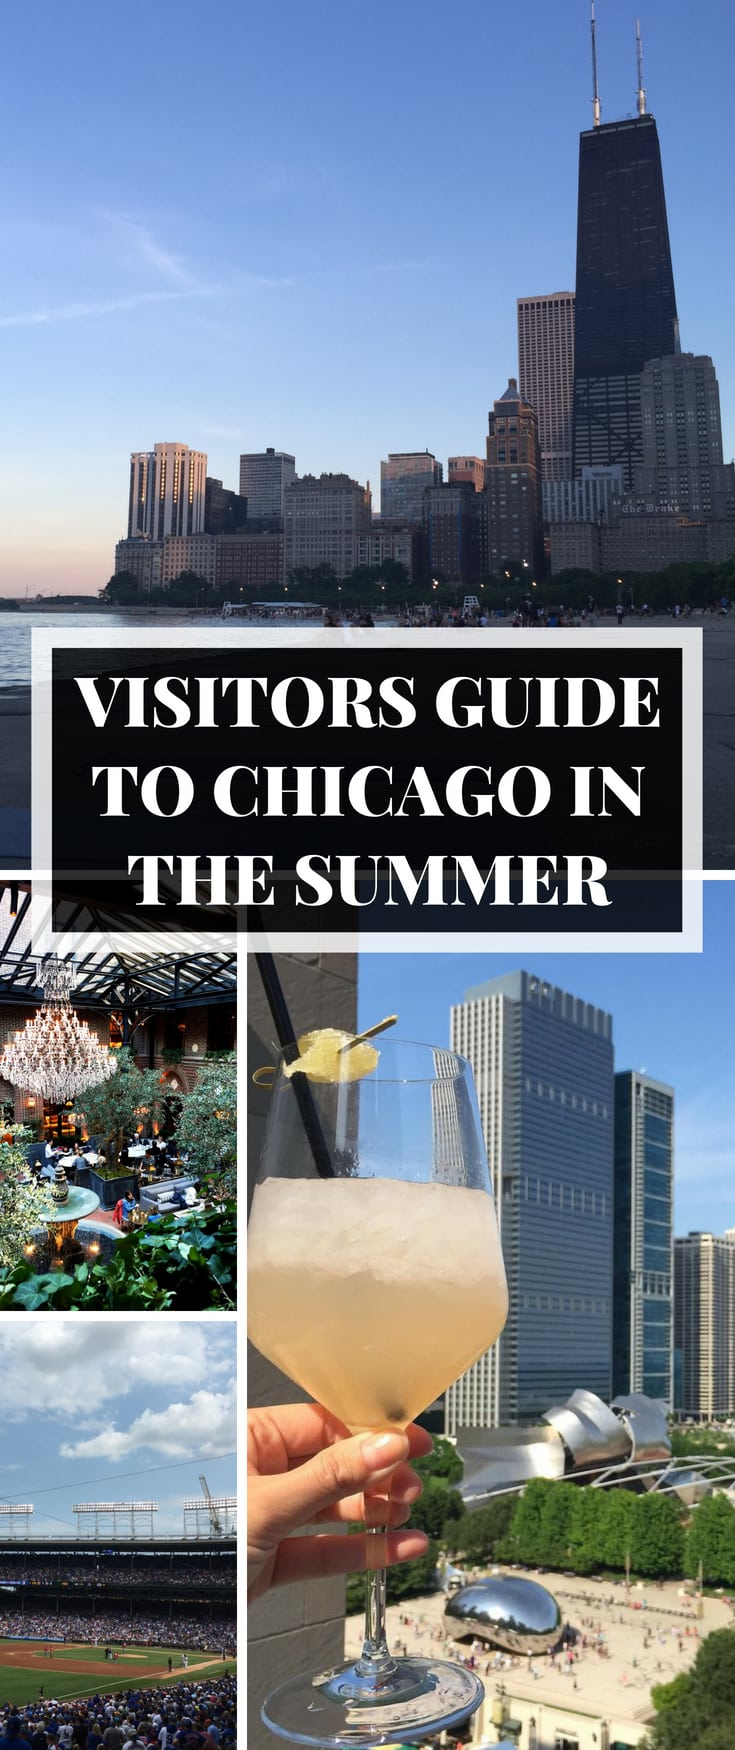 Things to do in Chicago during Summer: The ultimate list